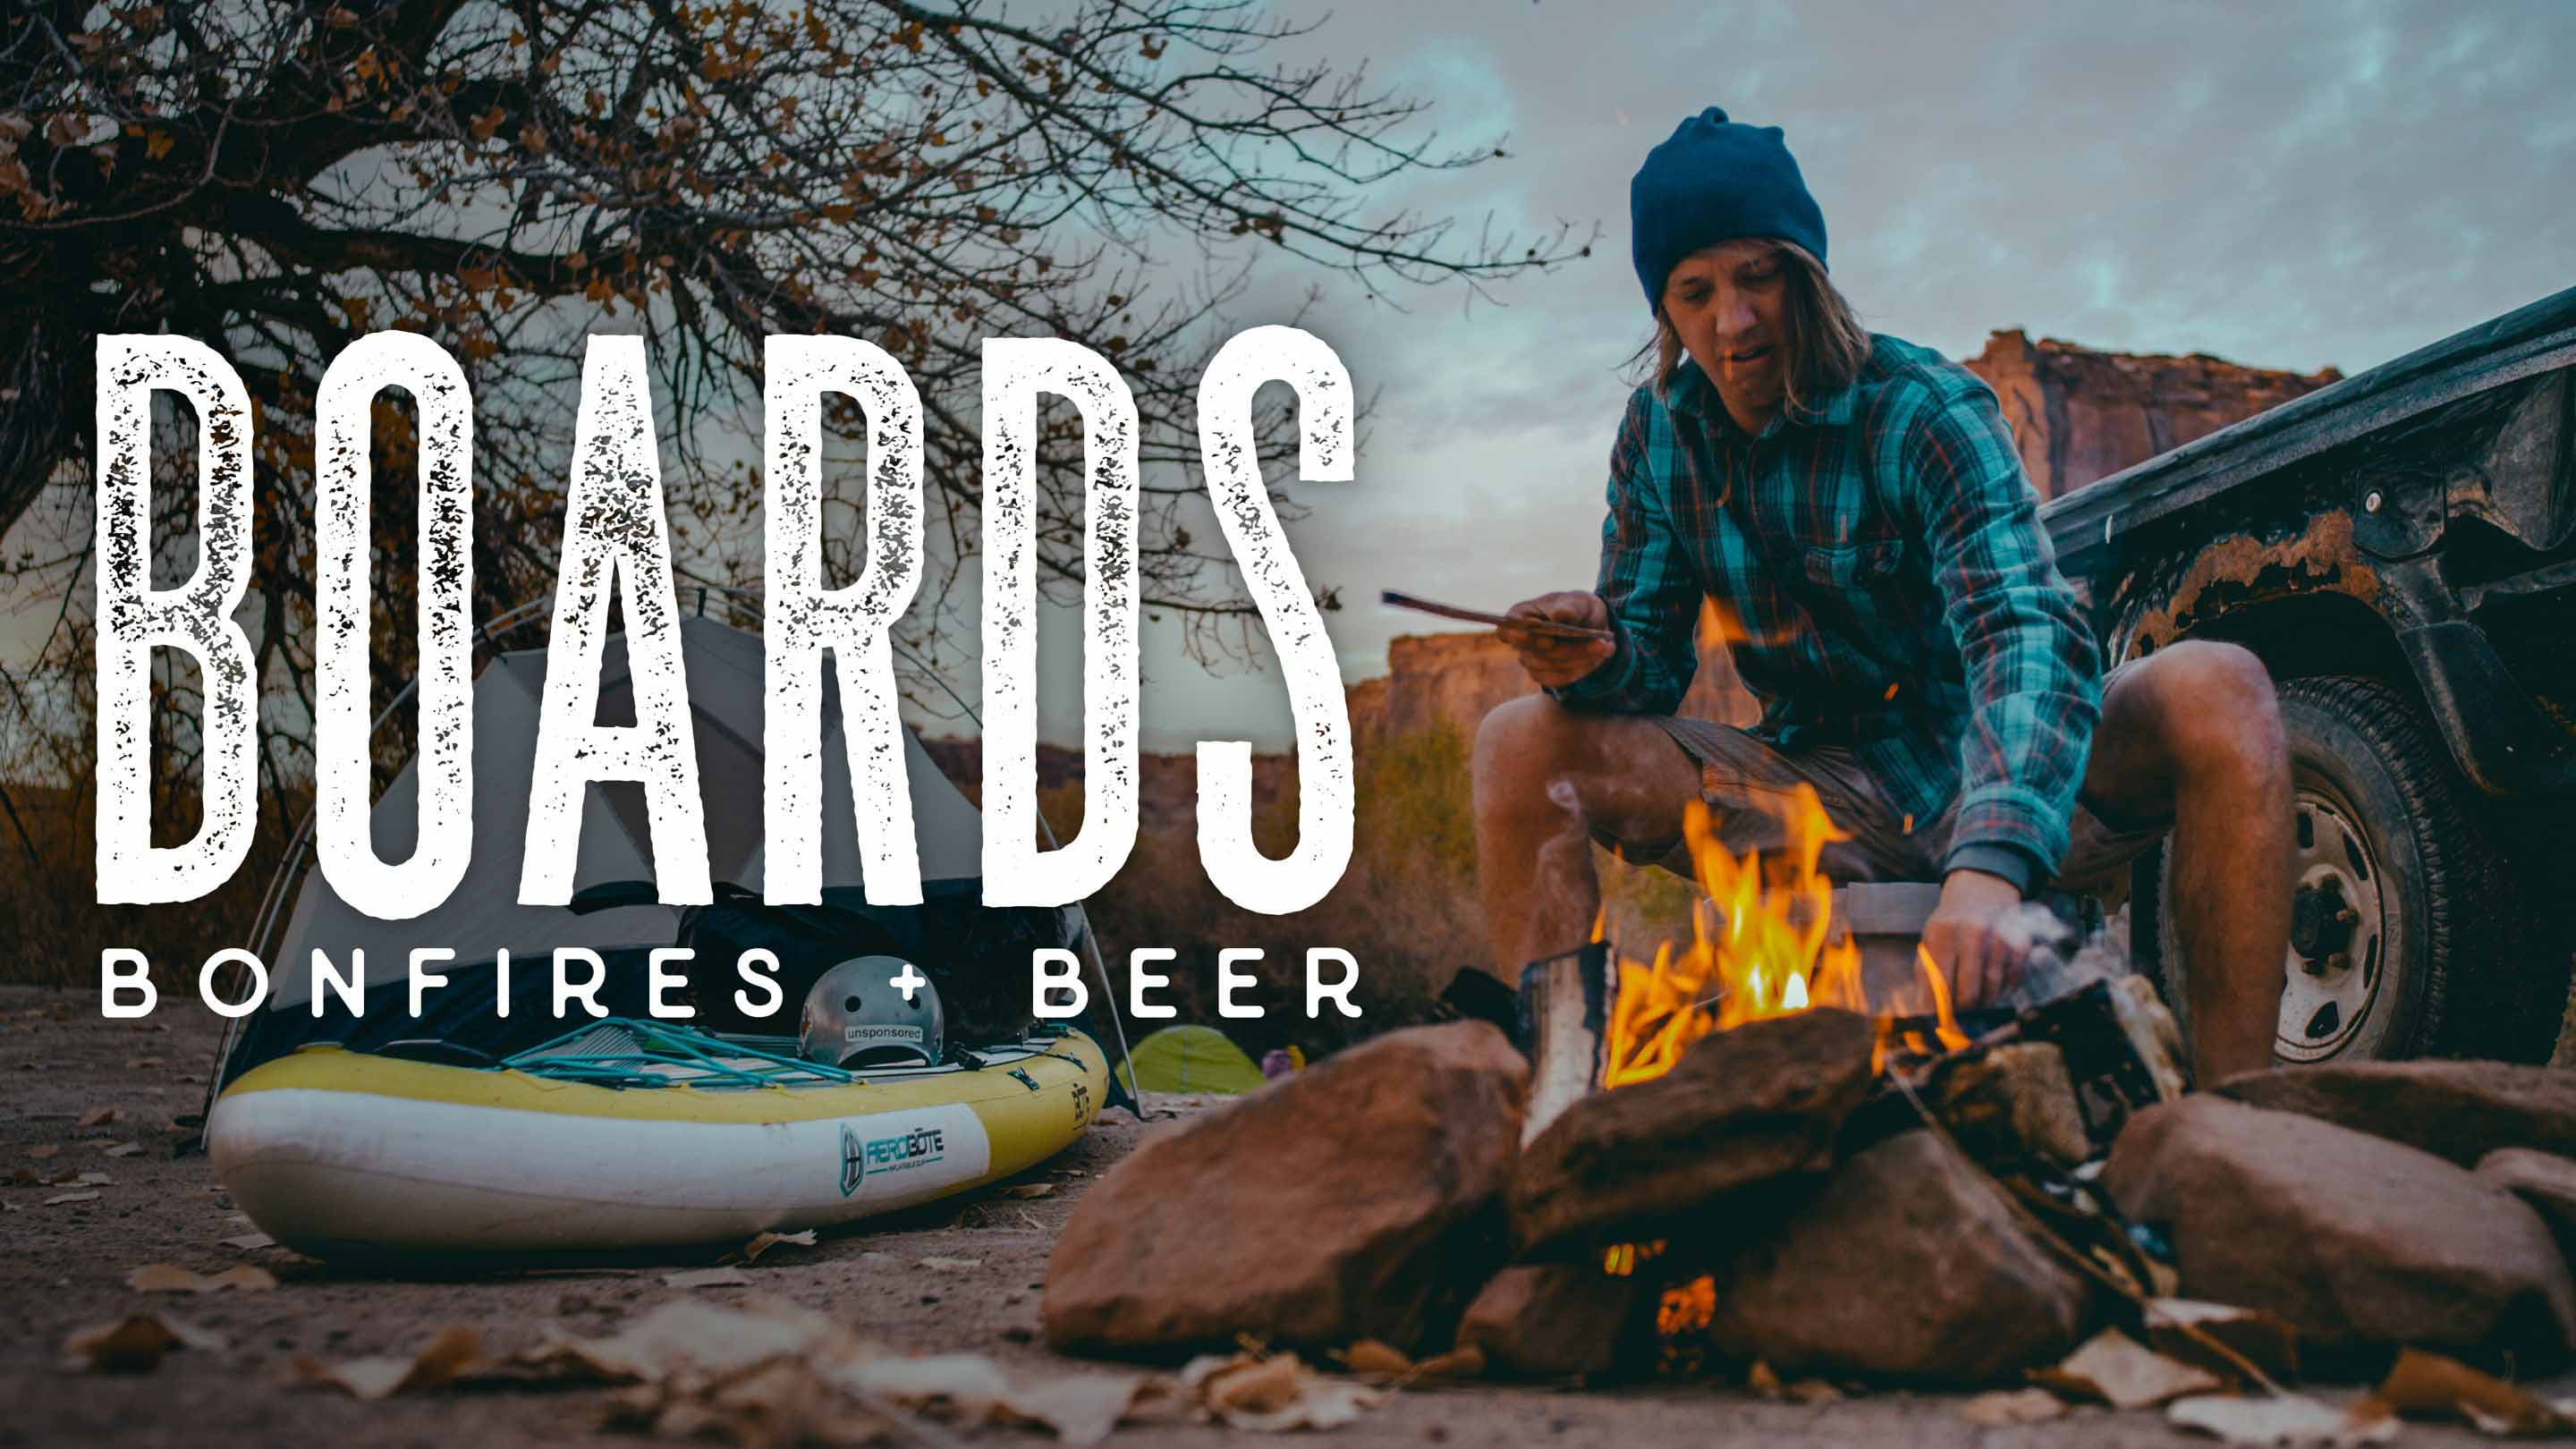 Boards, Bonfires, and Beer